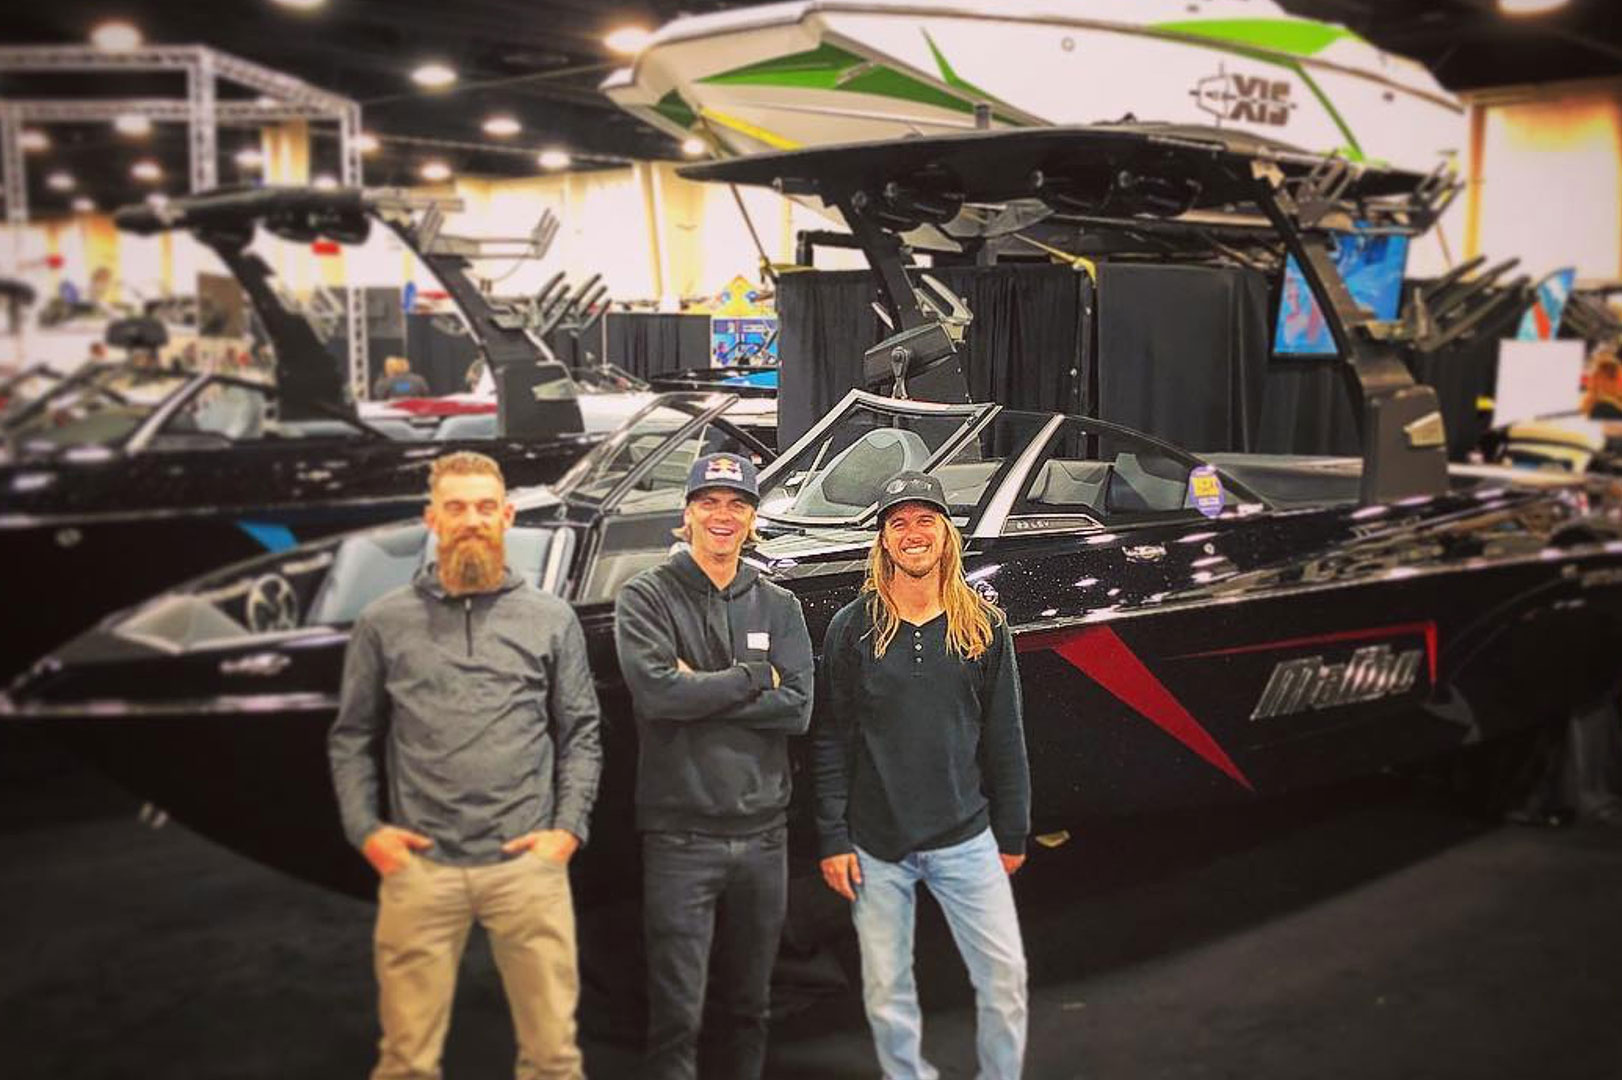 Malibu & Axis Dealers Bringing Summer to Boat Show